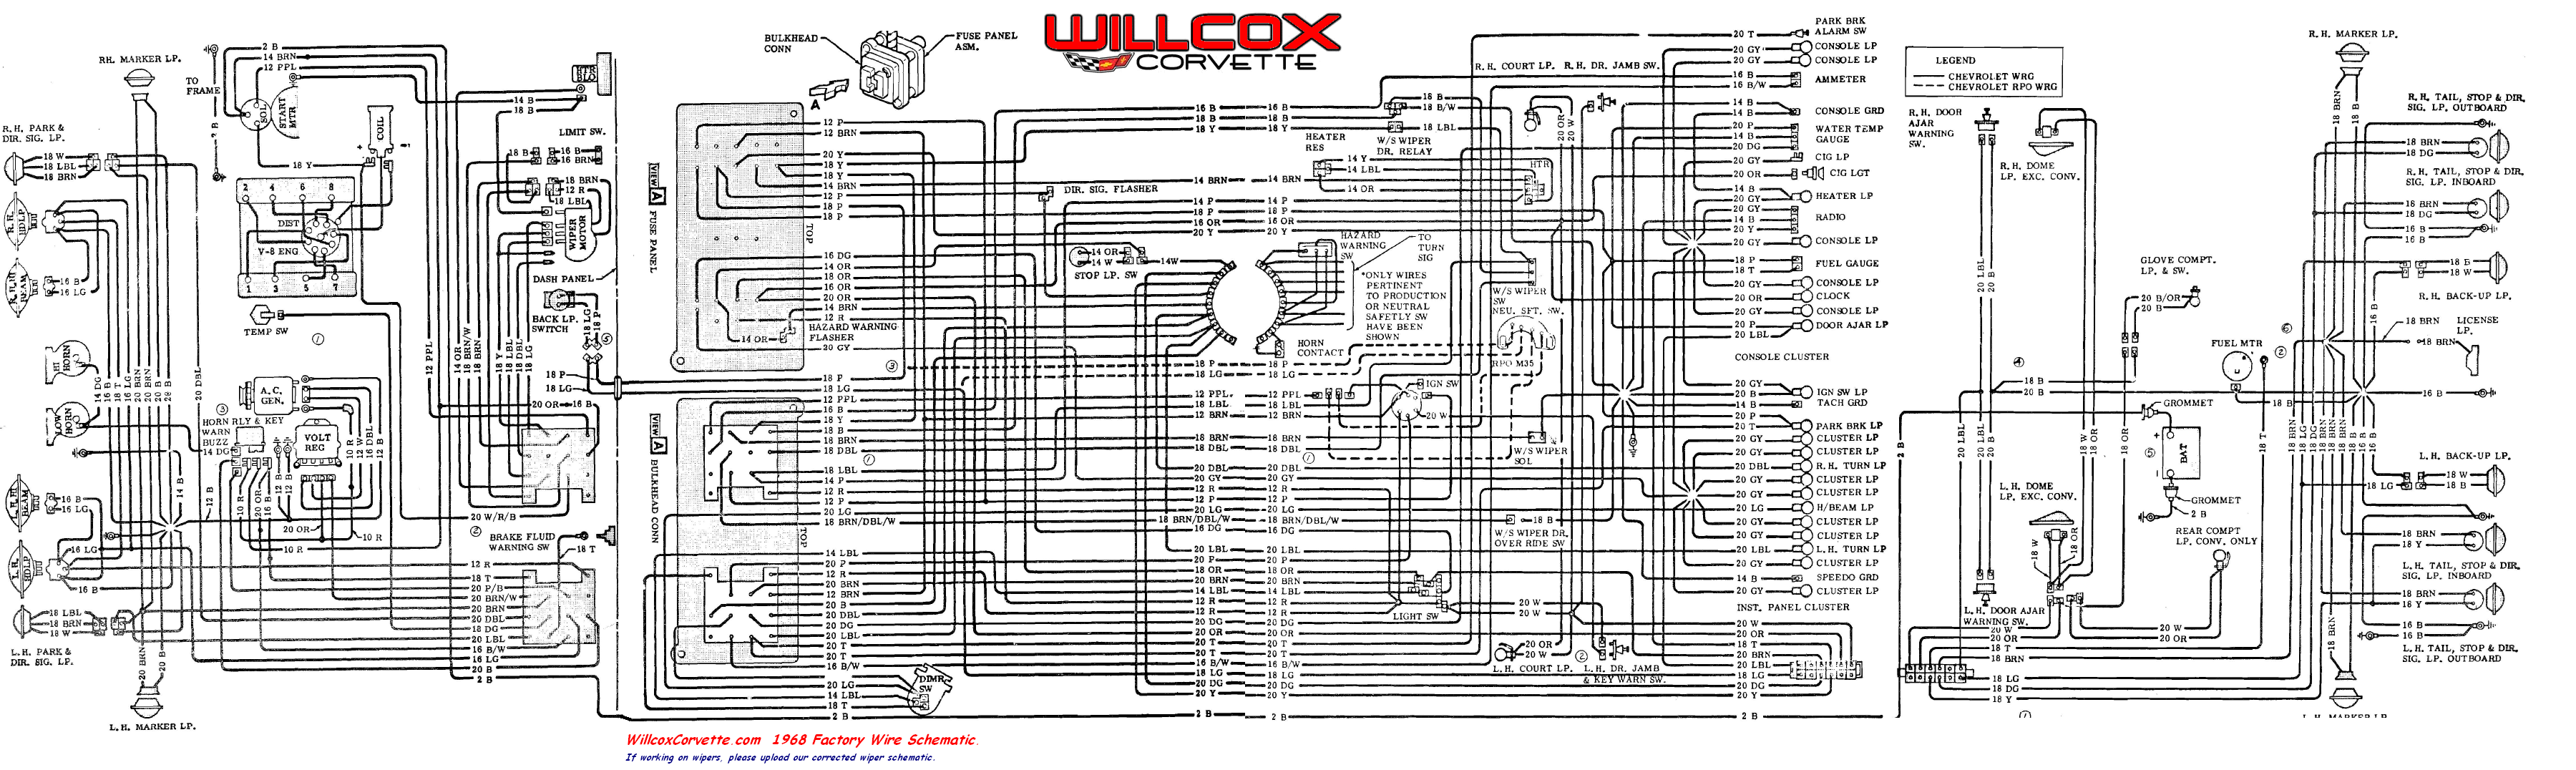 2008 corvette wiring schematic corvette wiring diagram corvette wiring diagrams online 1968 corvette wiring diagram tracer schematic willcox corvette